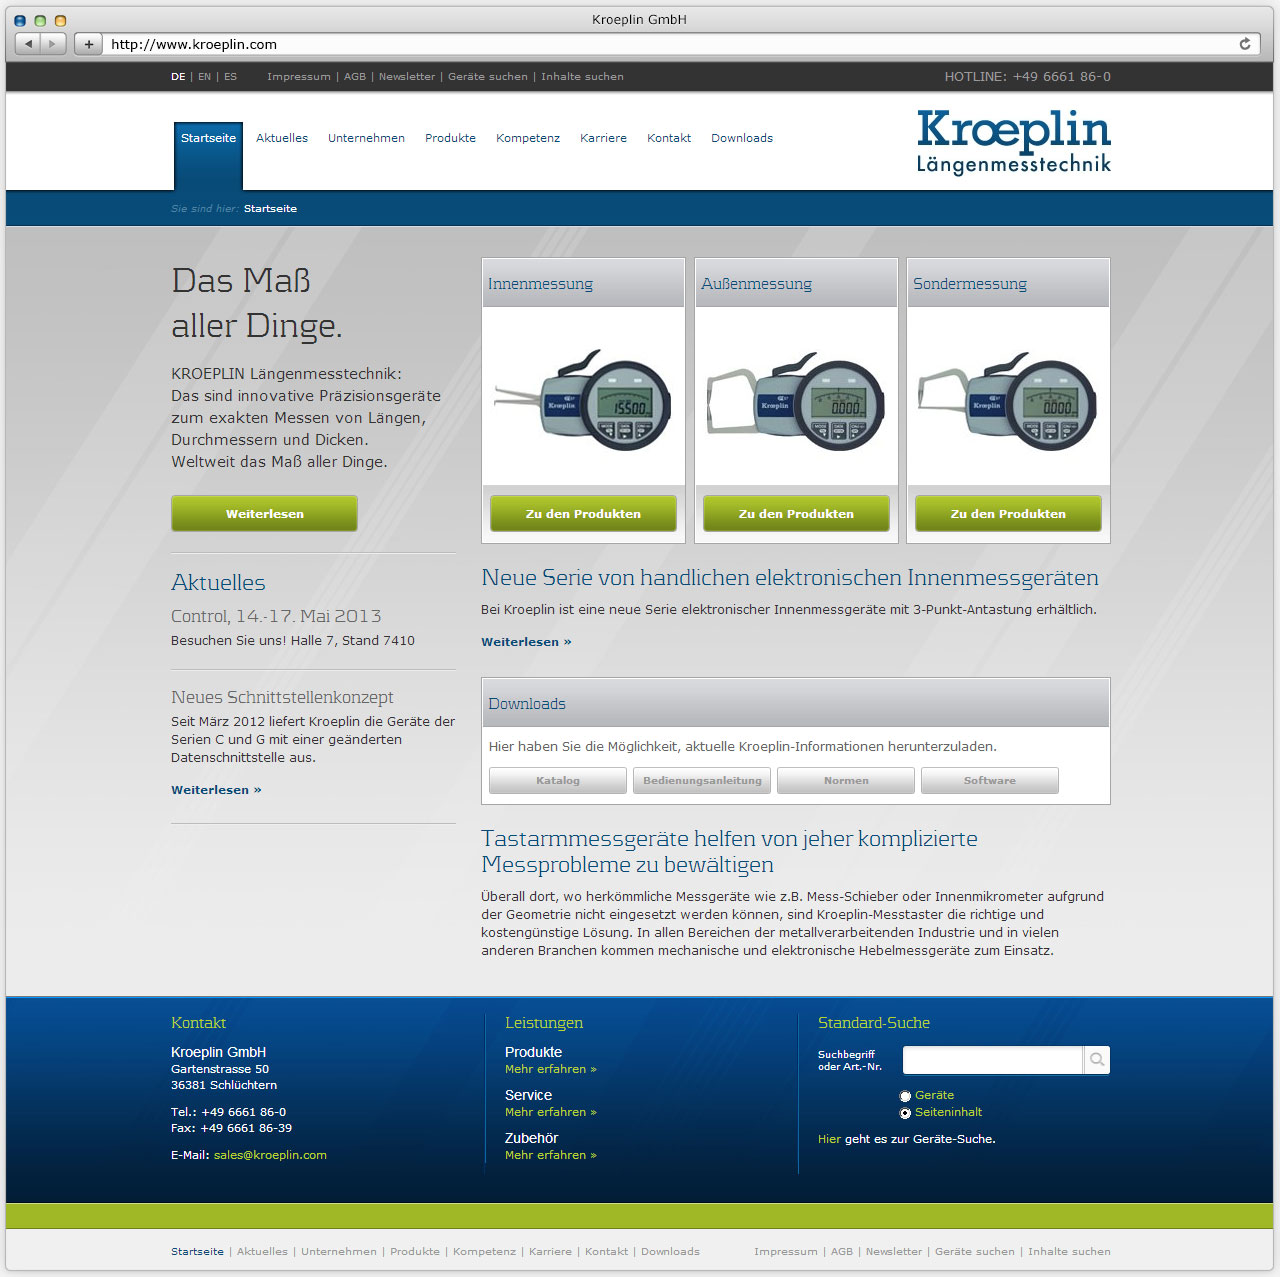 kroeplin_website_01